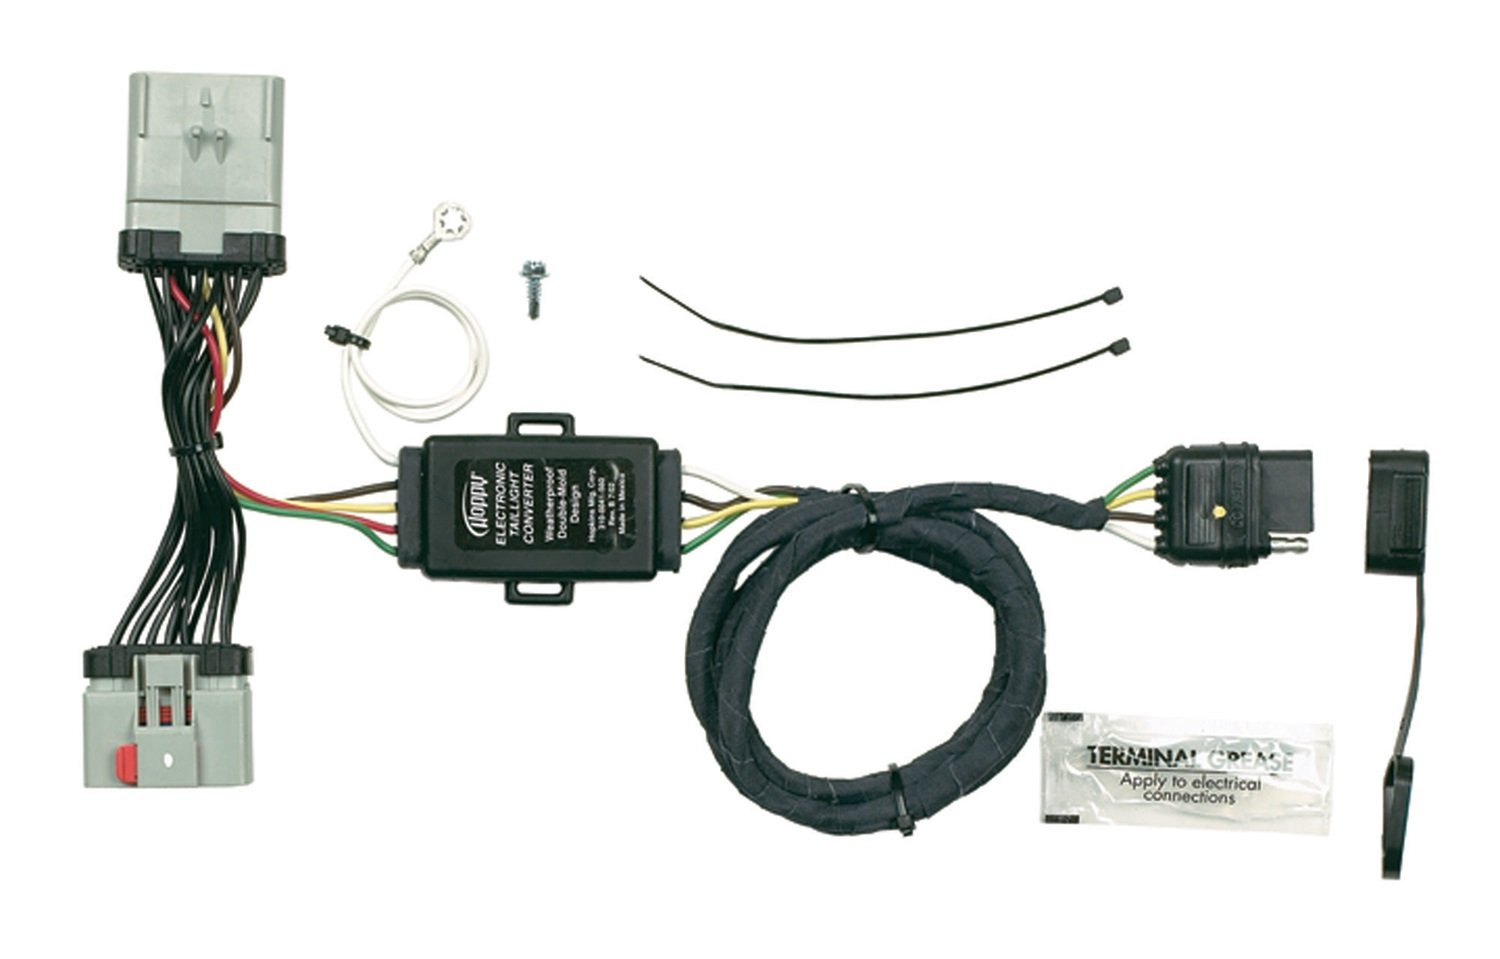 Hopkins 42475 Plug In Simple Vehicle Wiring Kit Automotive 2004 Jeep Liberty Window